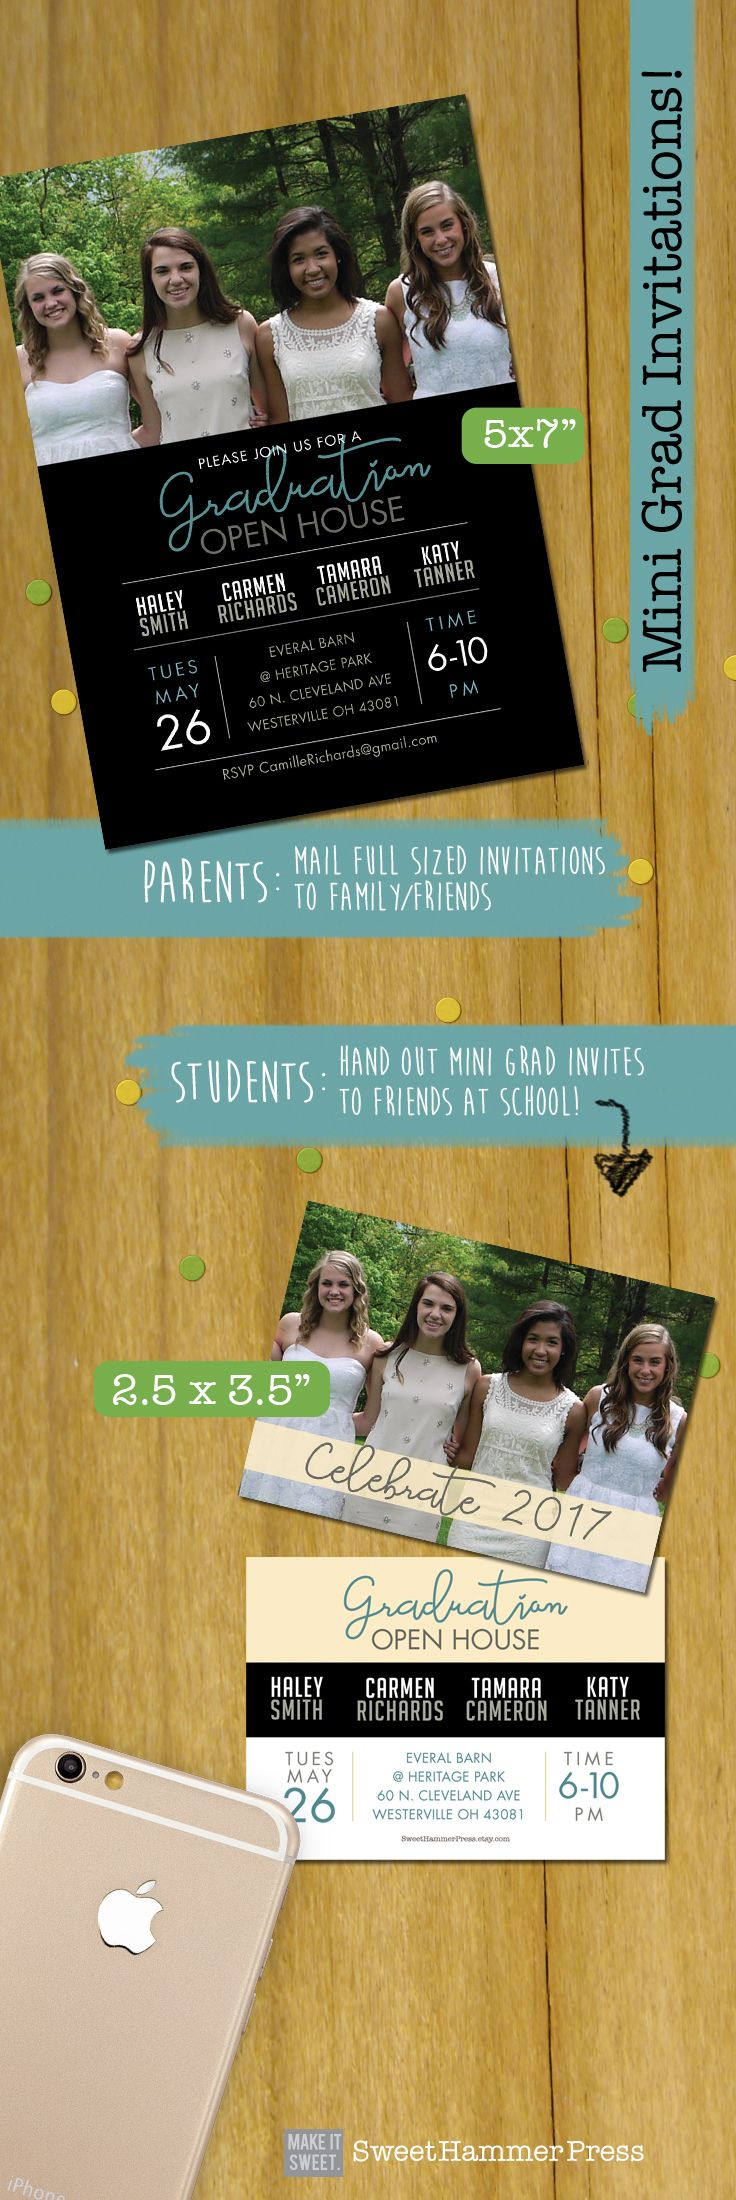 These mini graduation invites or trading card grad announcements are fun to hand out to classmates to invite them to your graduation party.